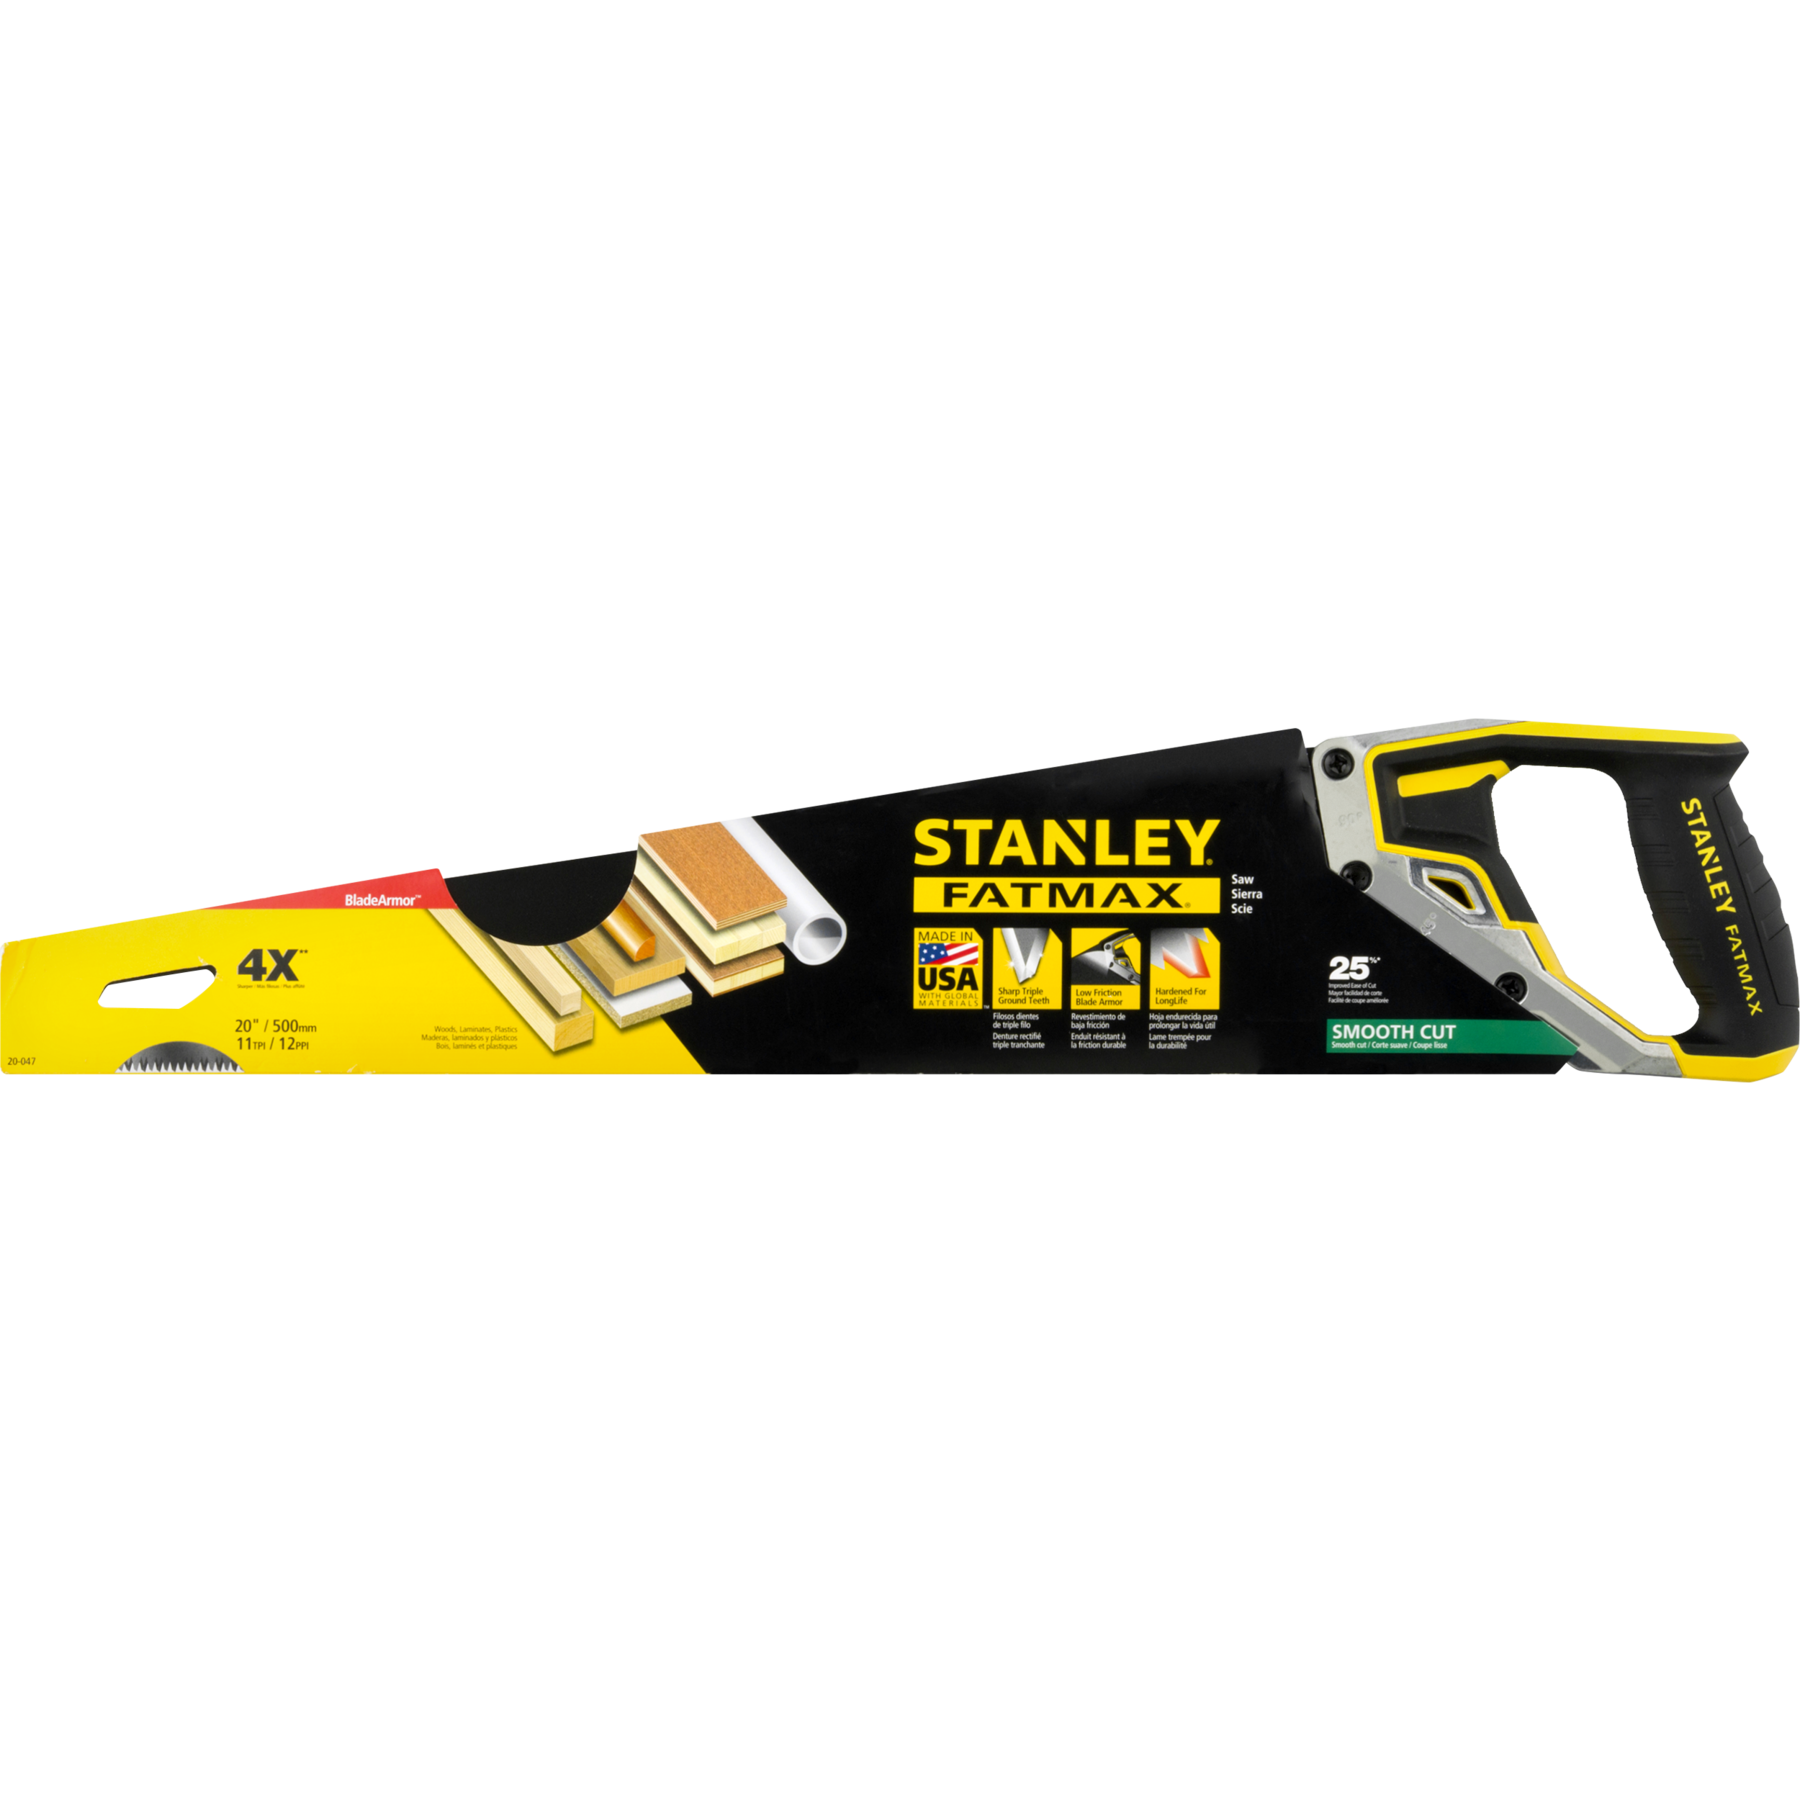 Stanley FatMax Smooth Cut Saw, 1.0 CT